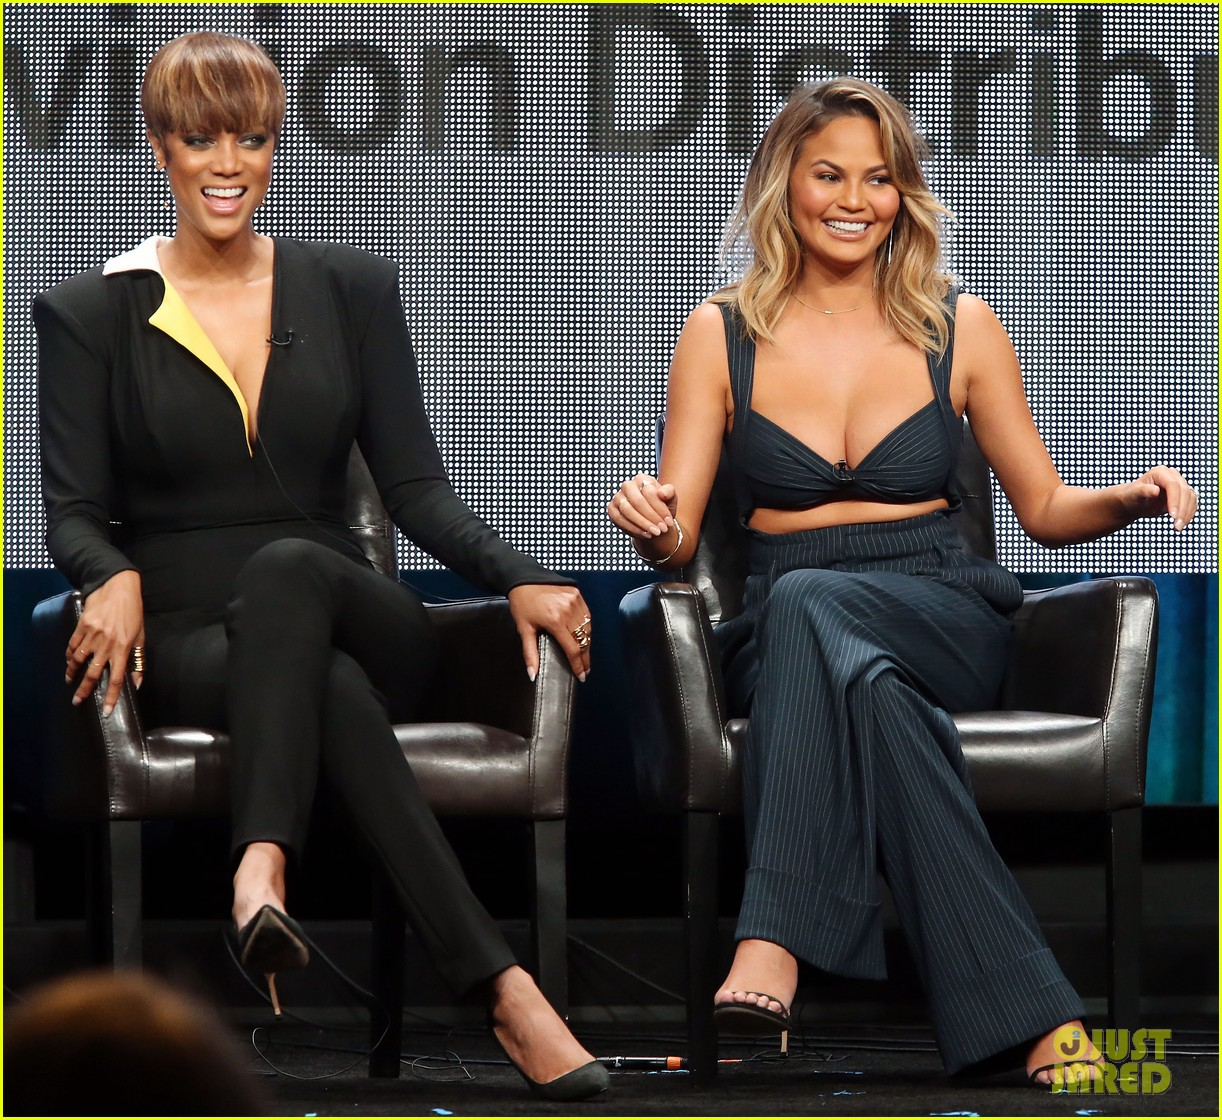 Tyra Banks Family: Chrissy Teigen Is 'Ready To Have A Family' With John